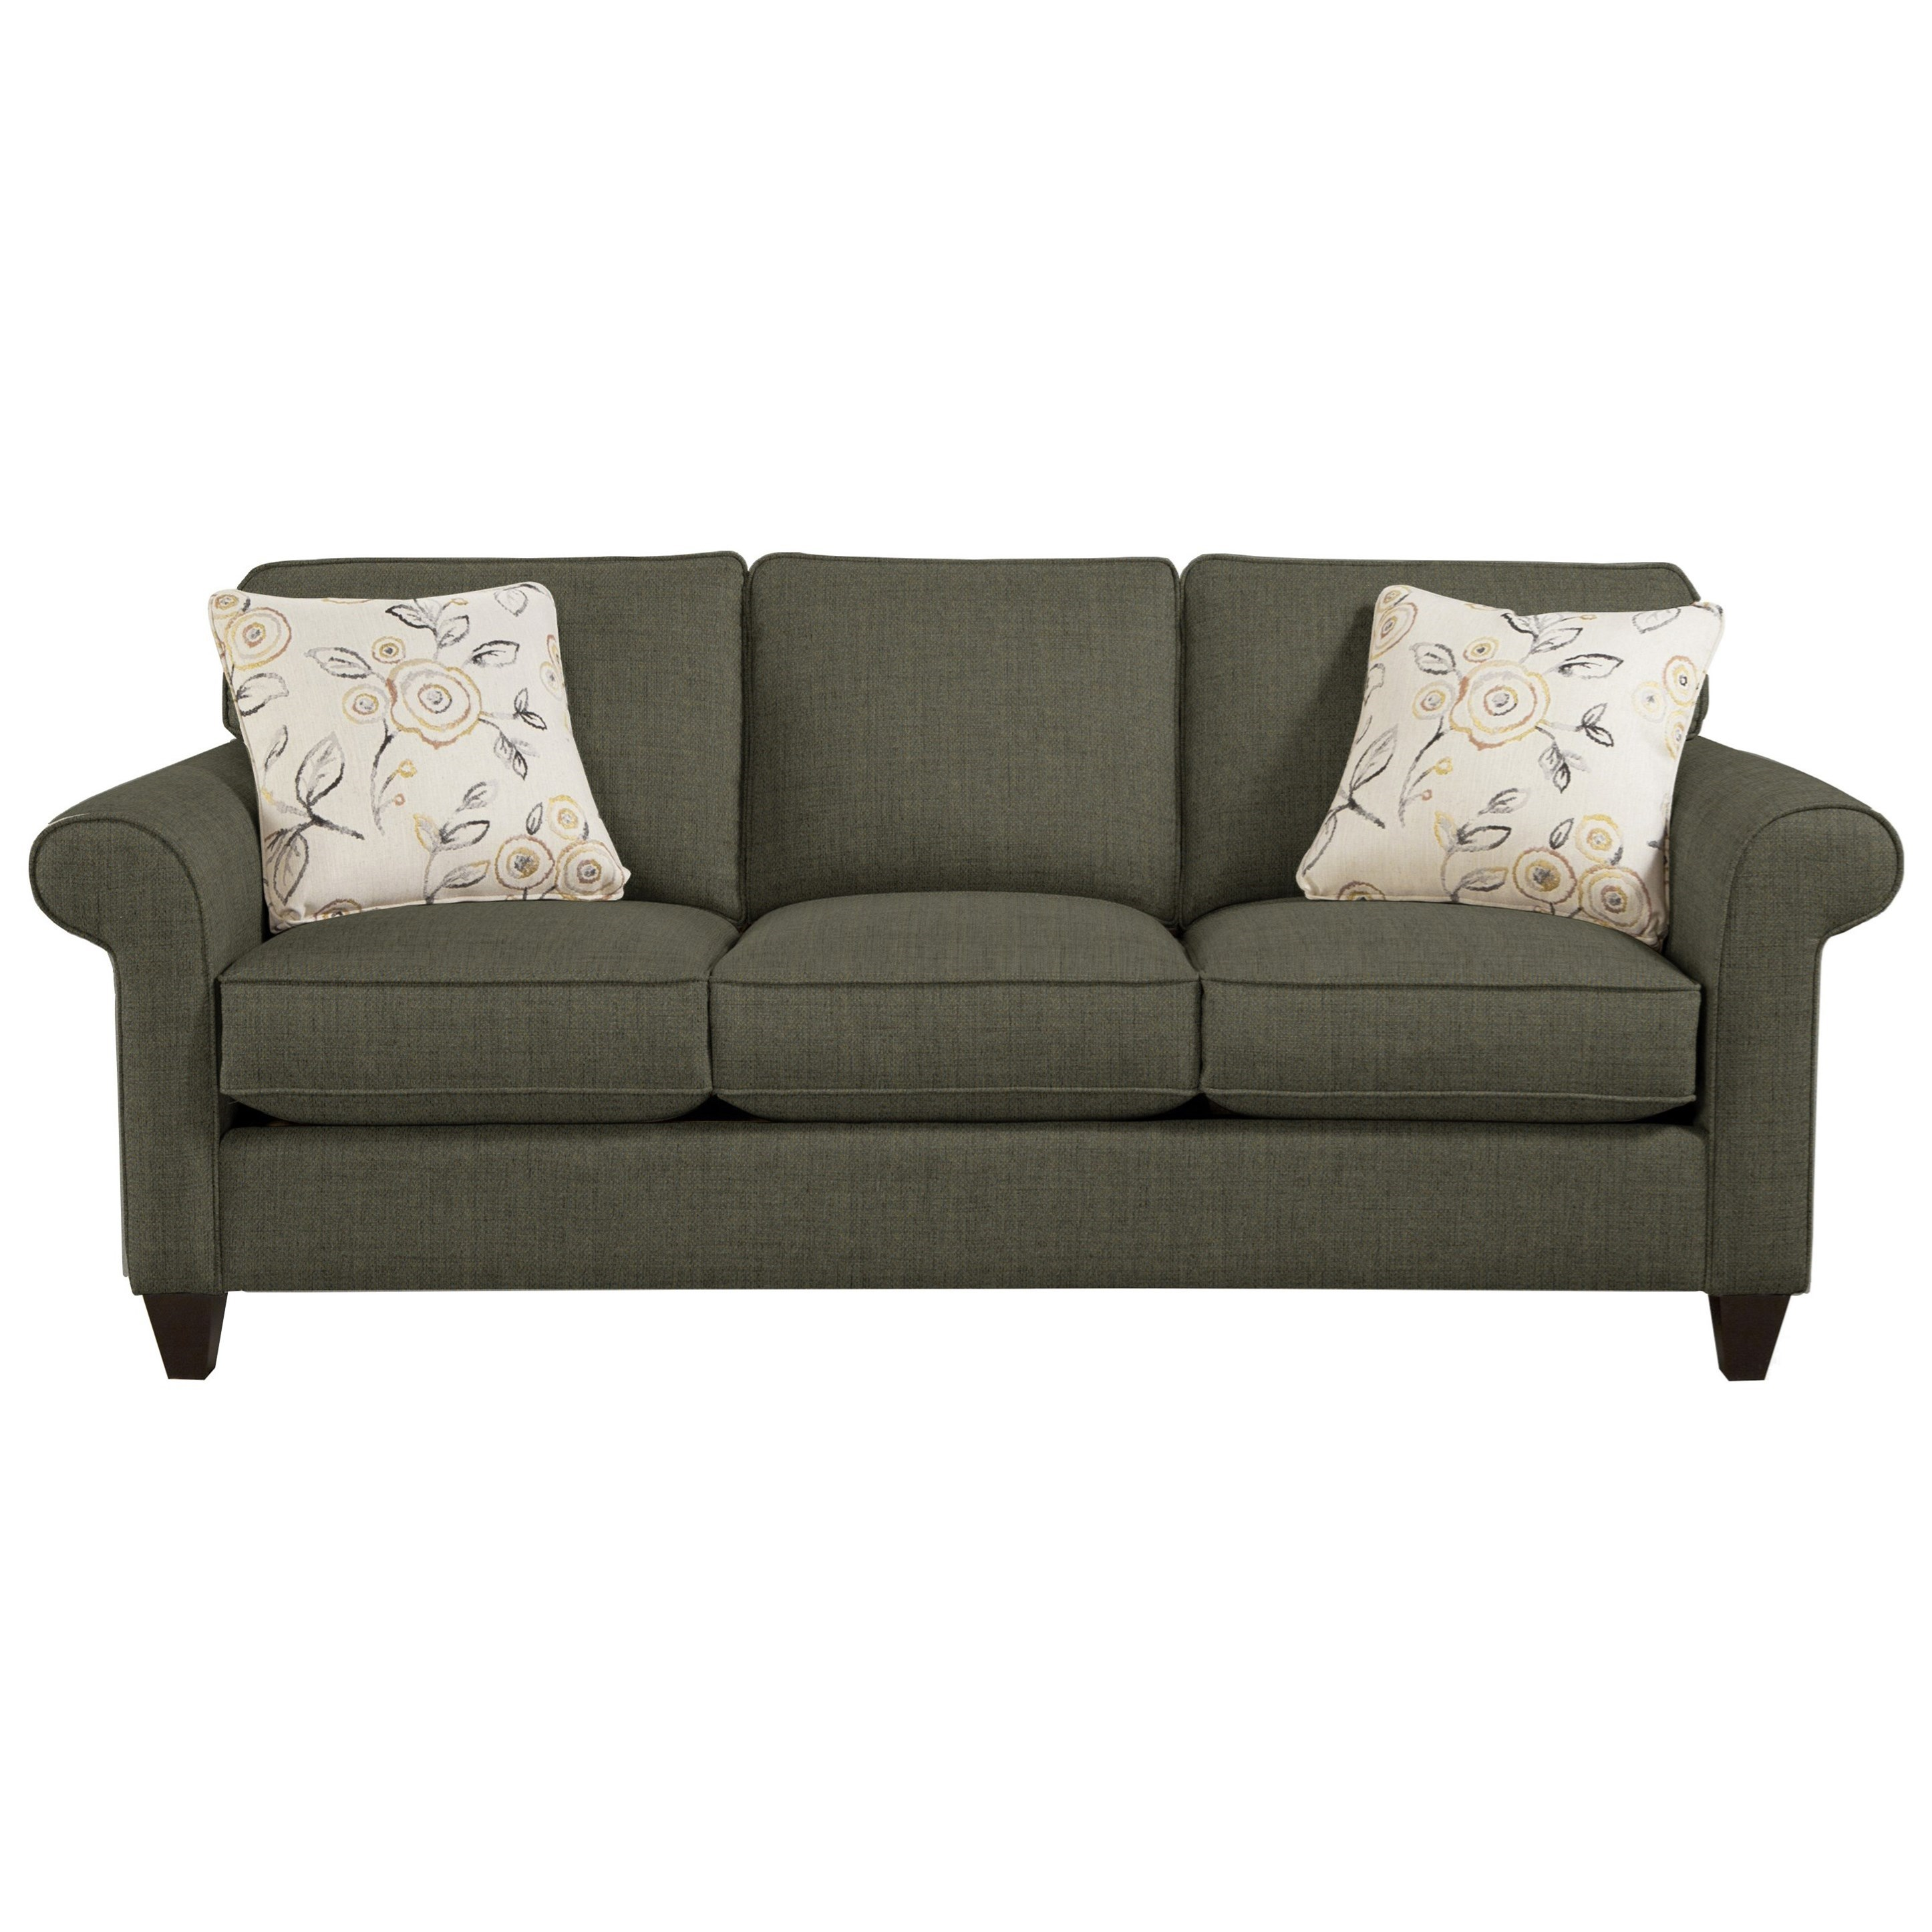 7421 Sofa by Craftmaster at Lindy's Furniture Company